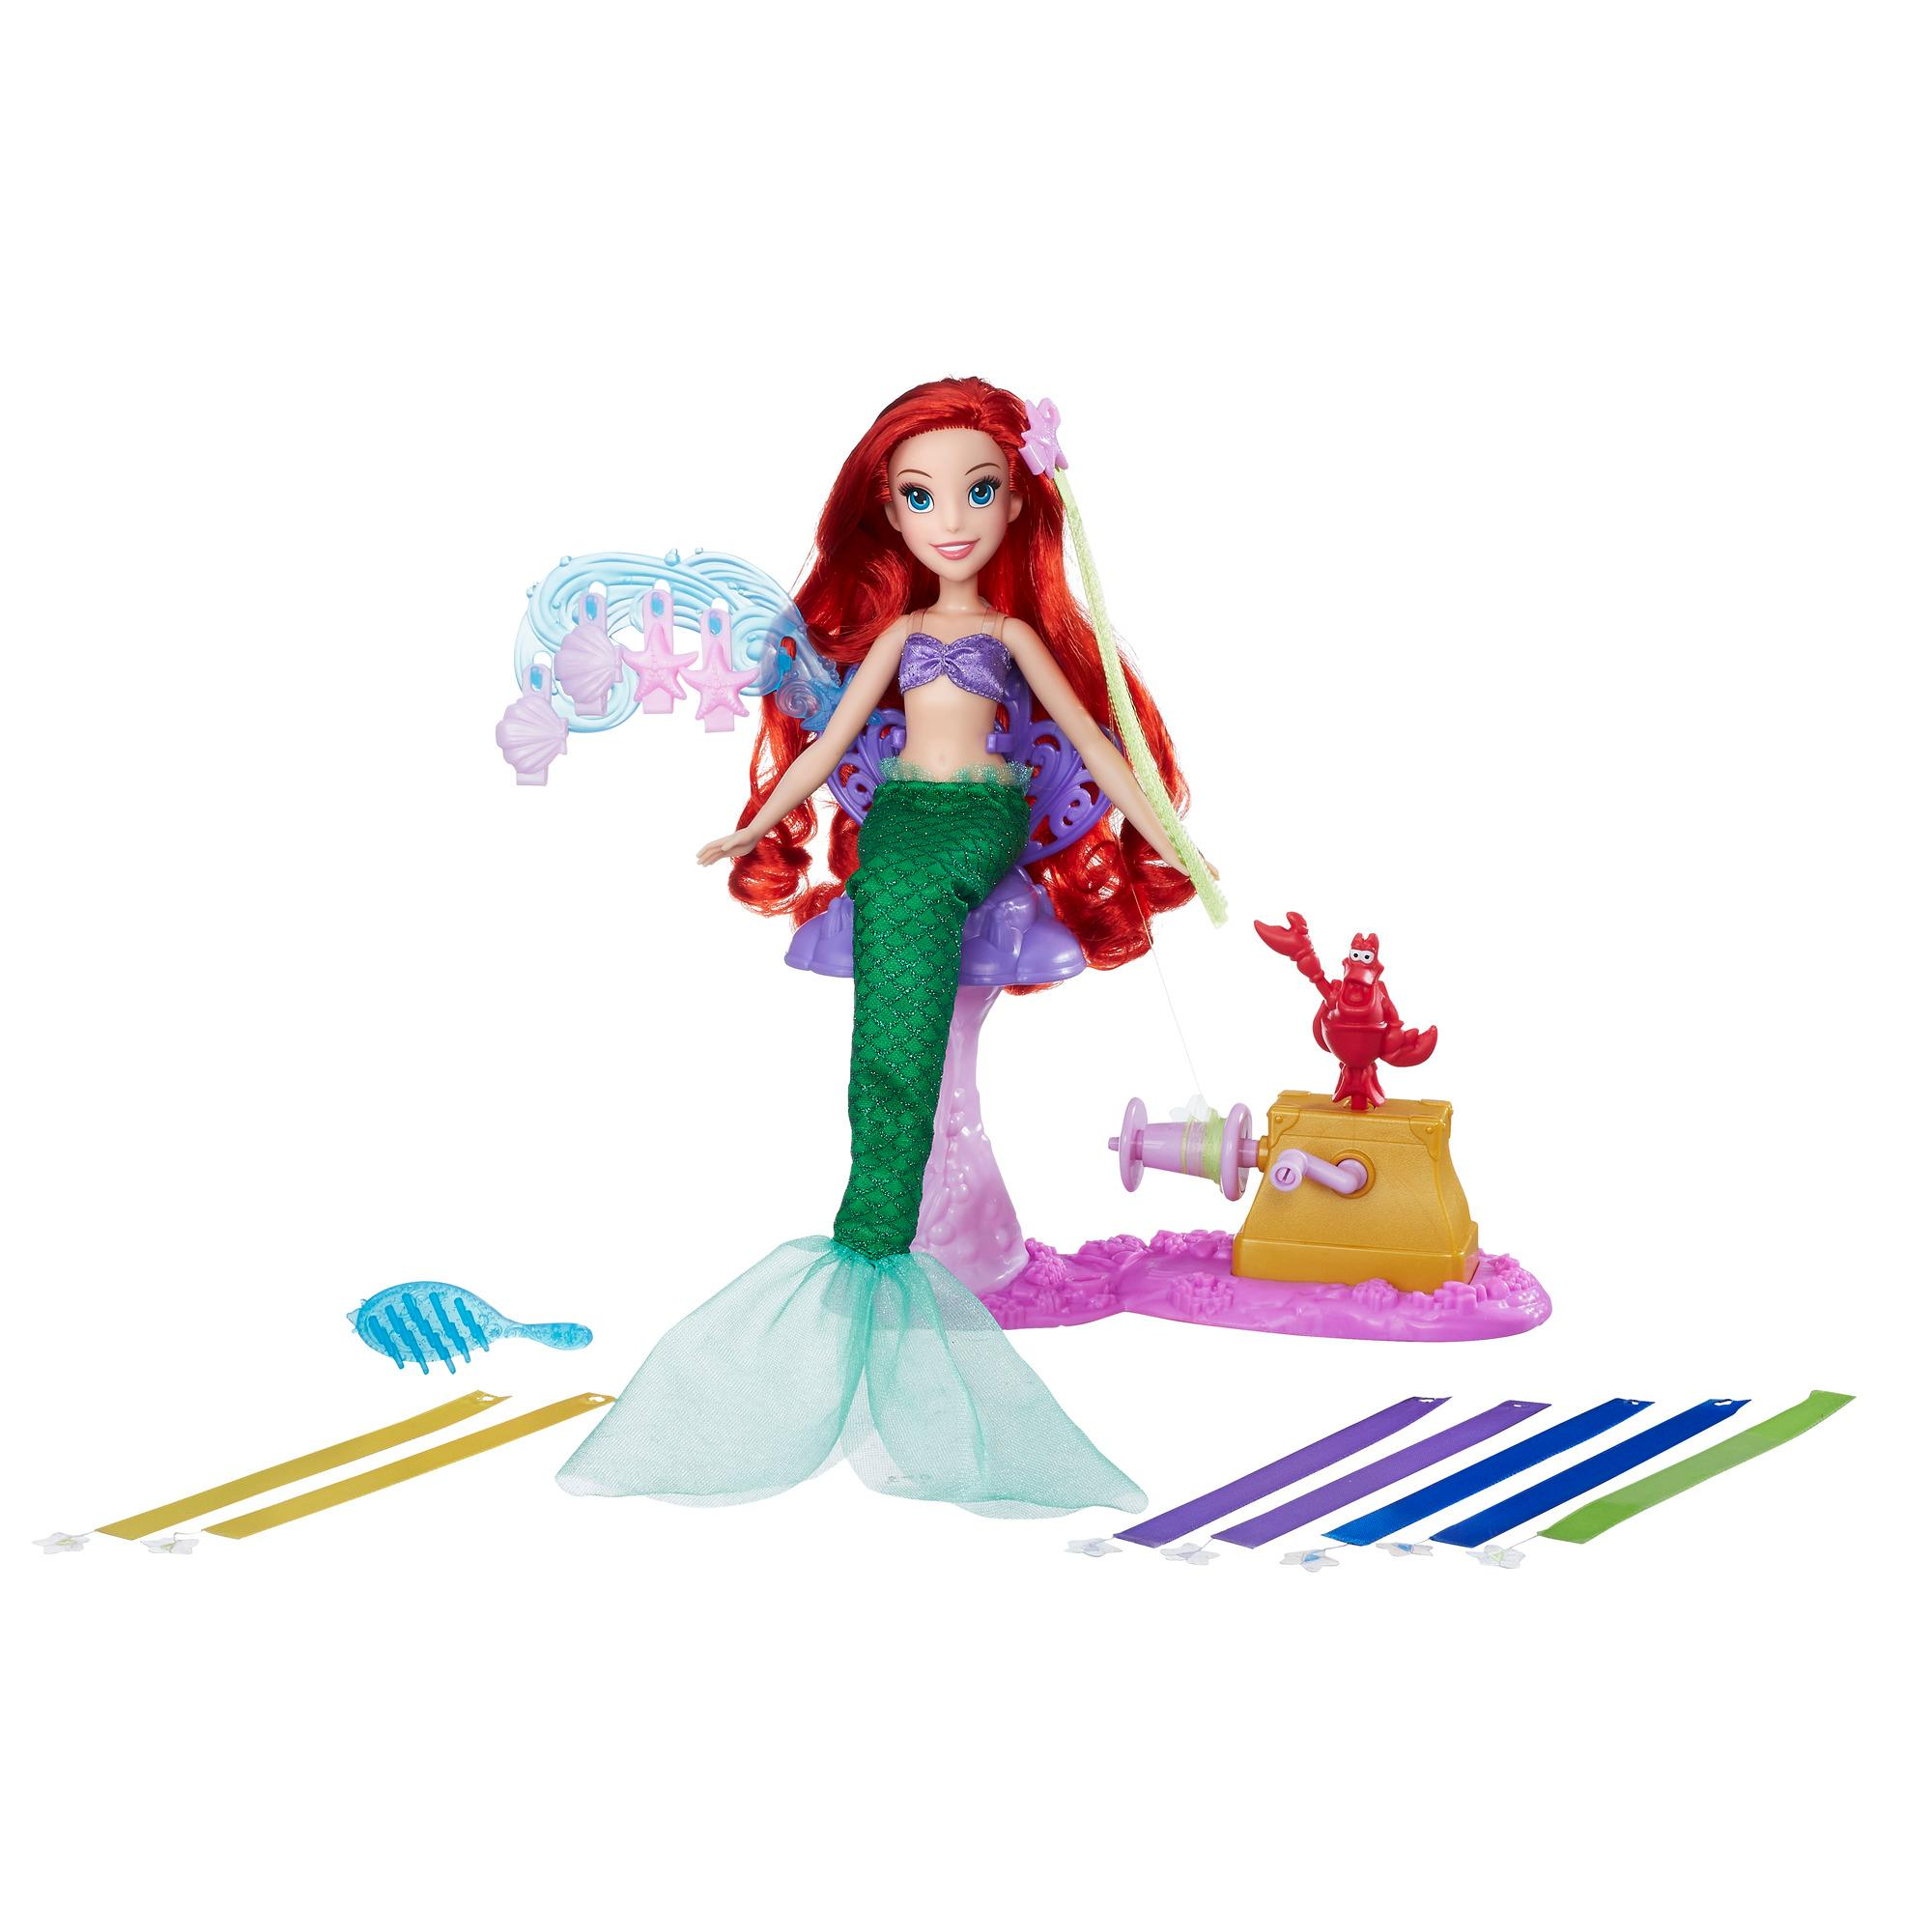 Amazon.com: Disney Princess Ariel's Royal Ribbon Salon ...